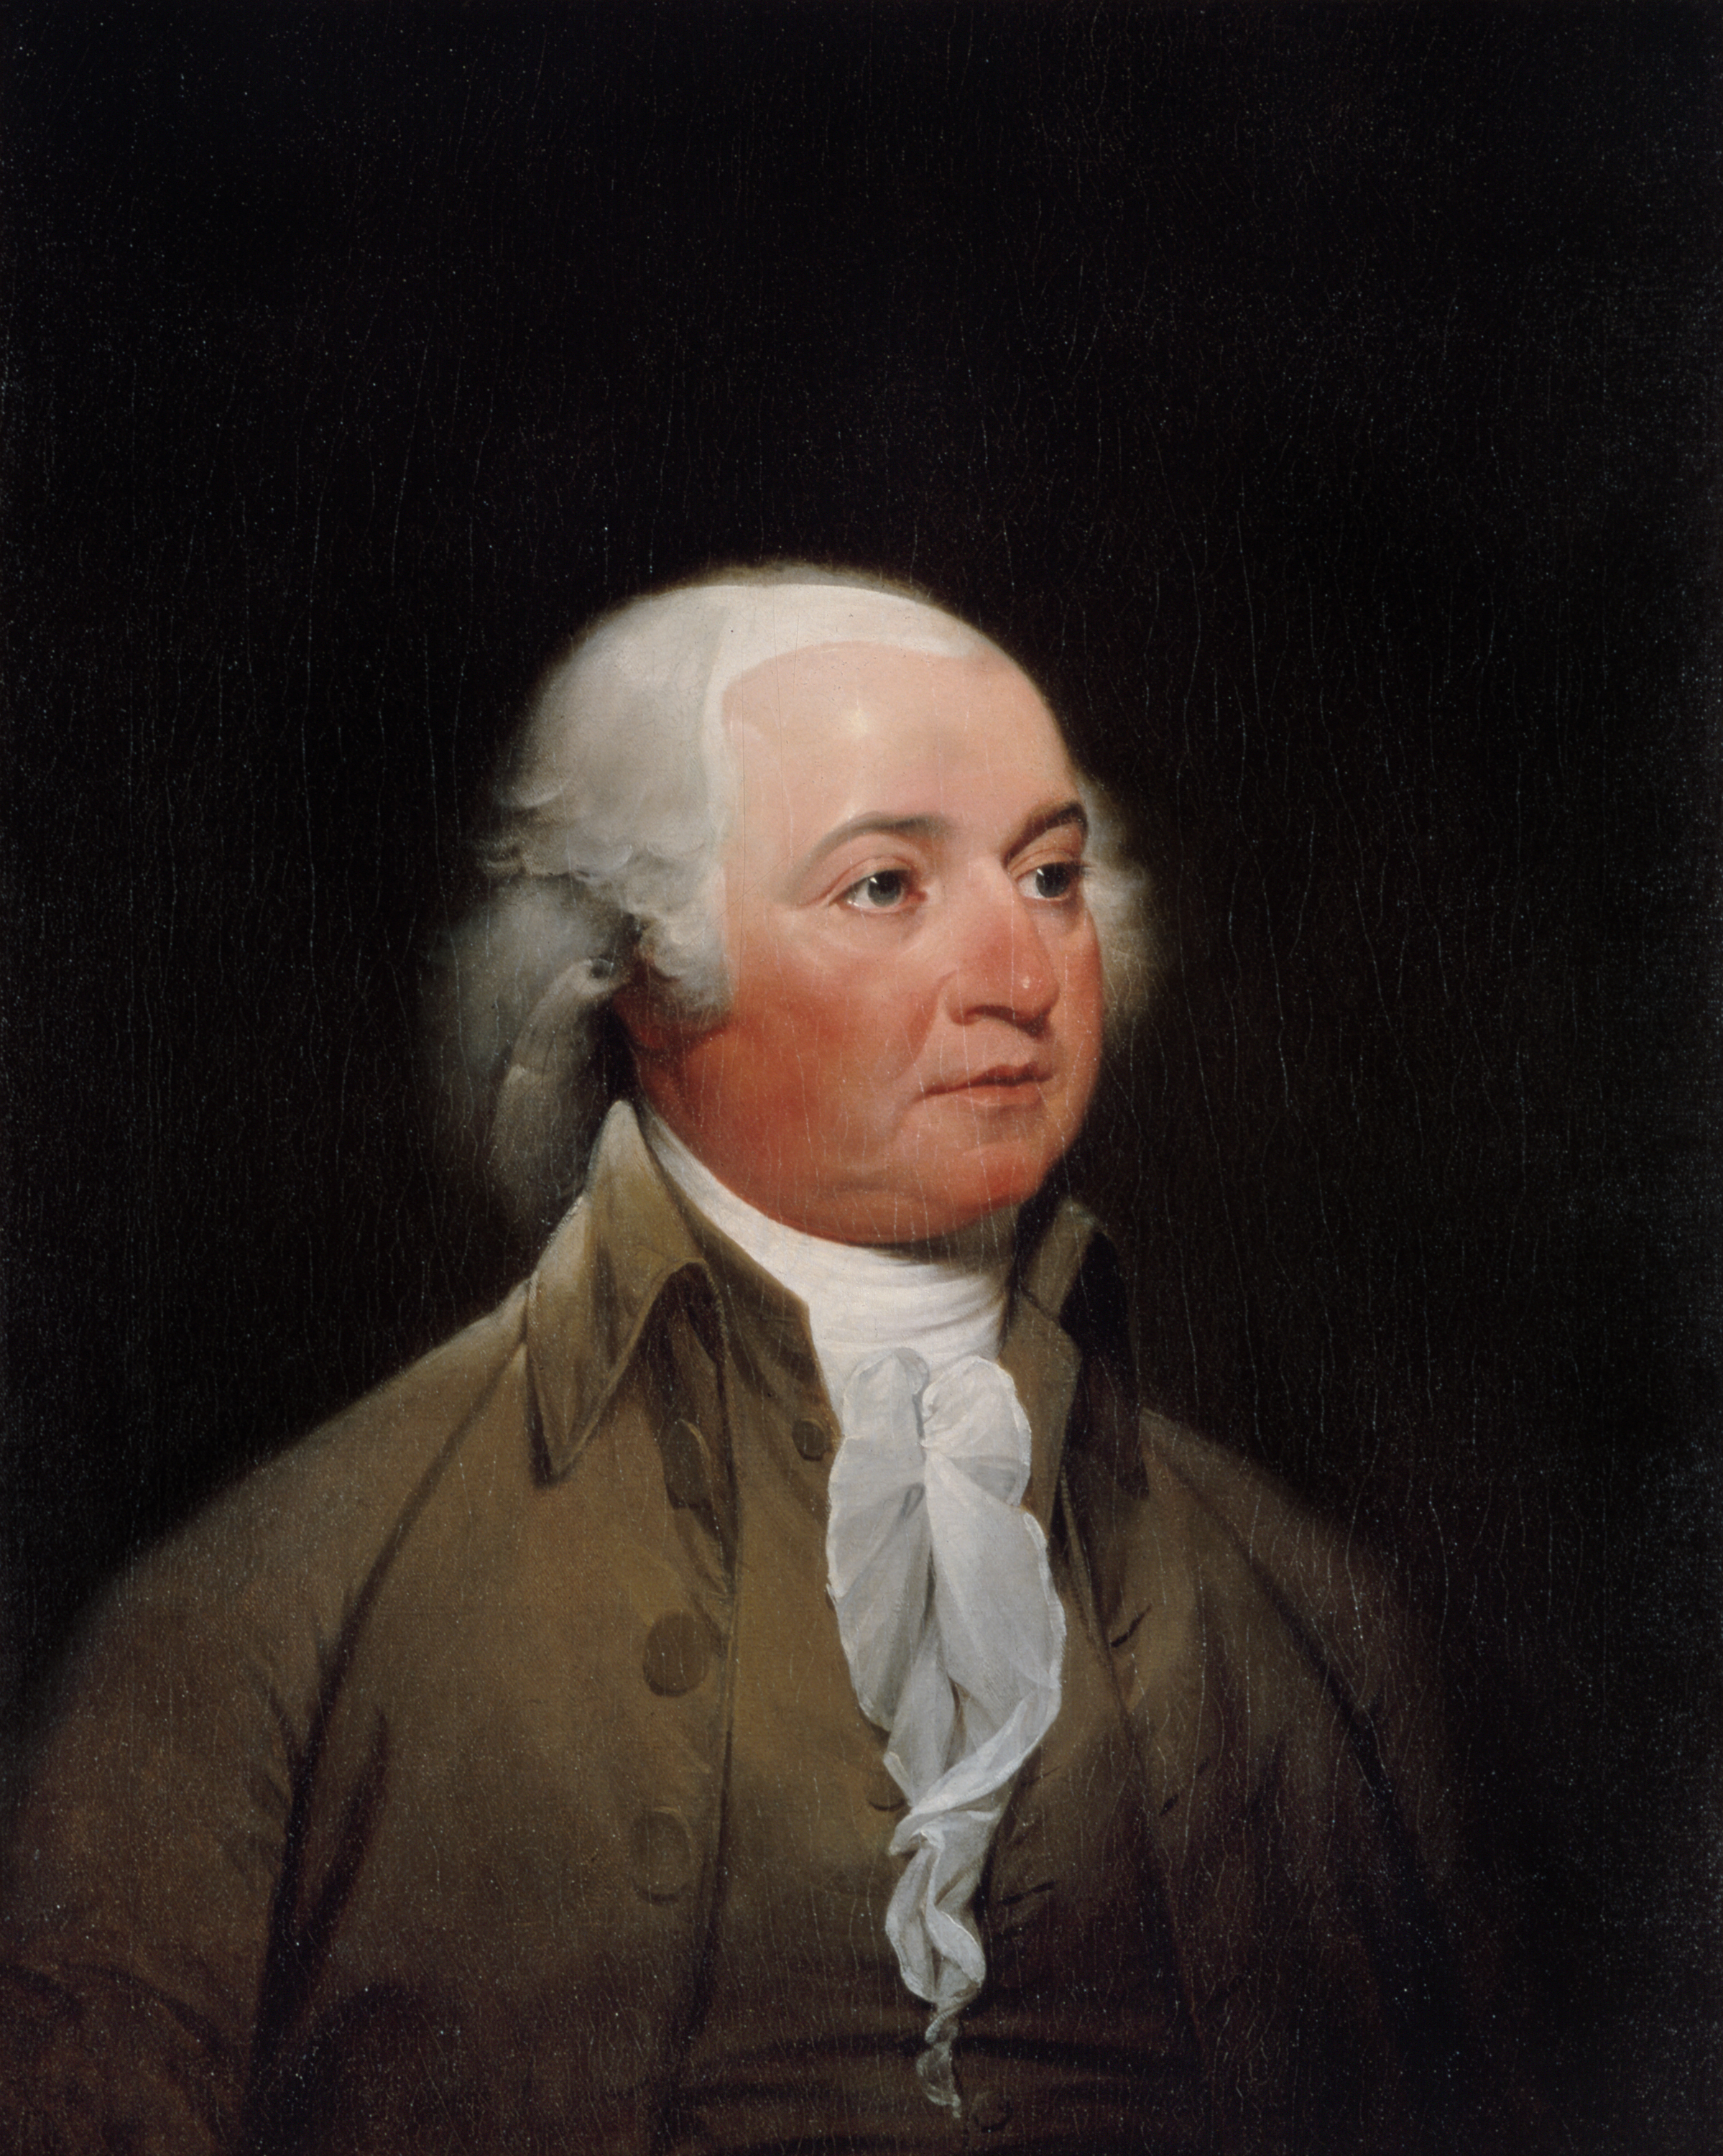 John Adams, by By John Trumbull, 1793. National Portrait Gallery, Smithsonian Institution